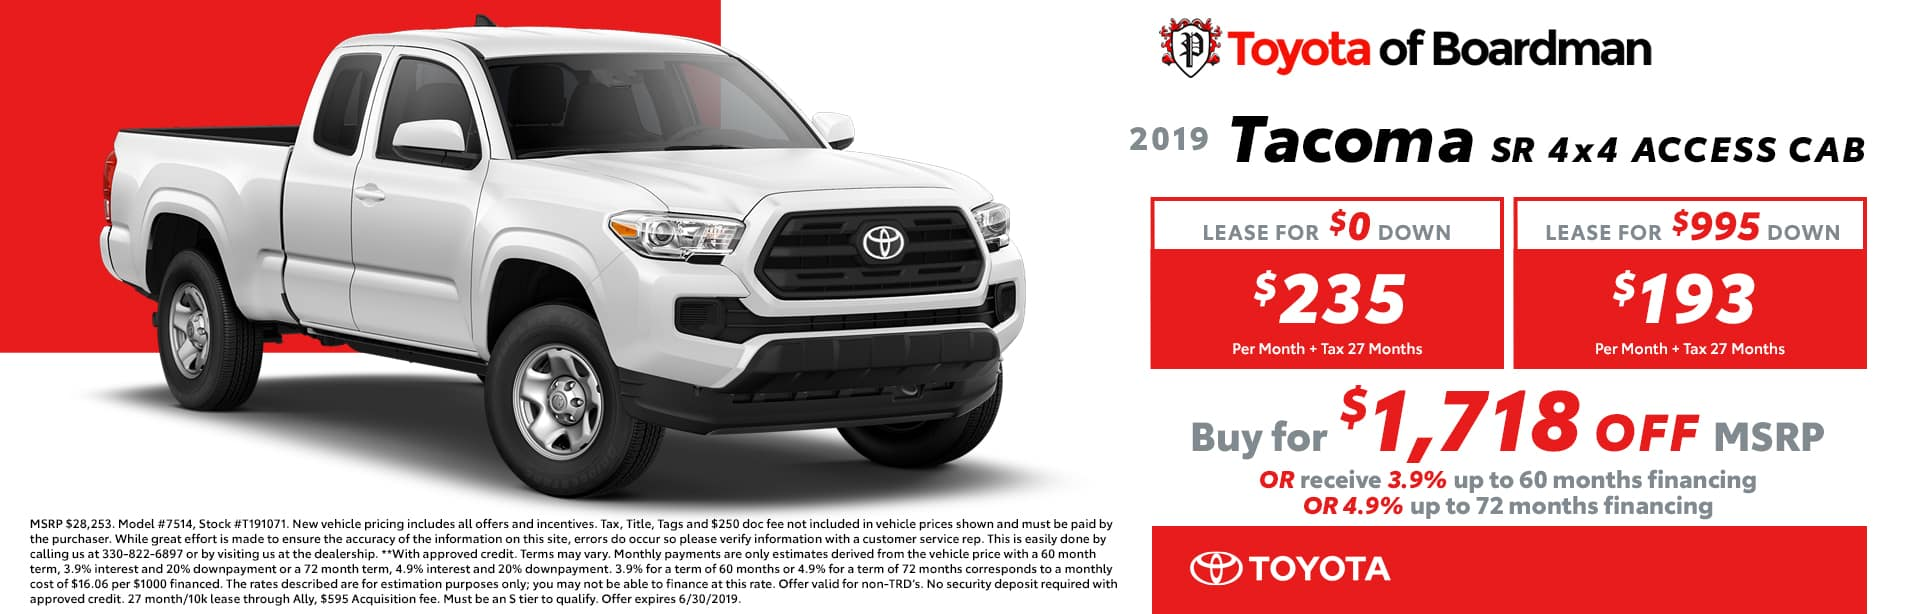 June special on the 2019 Toyota Tacoma